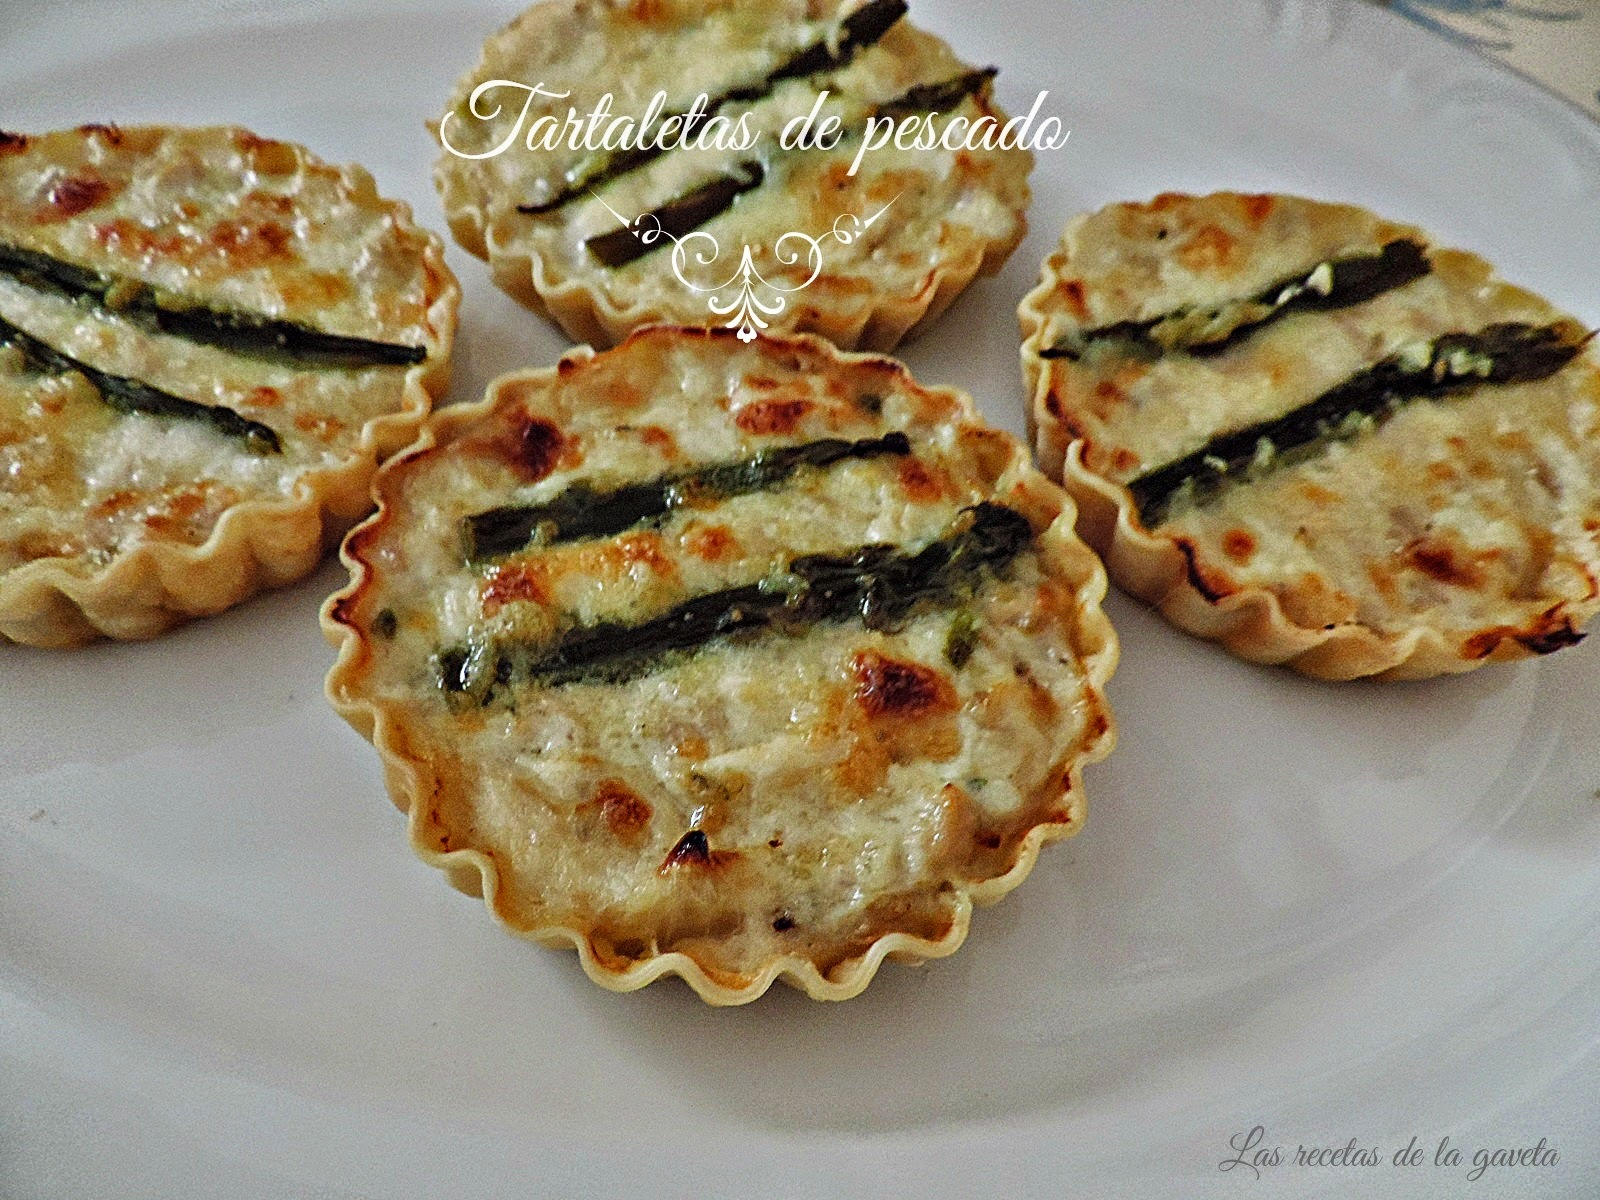 Tartaletas con pescado (Quitches)